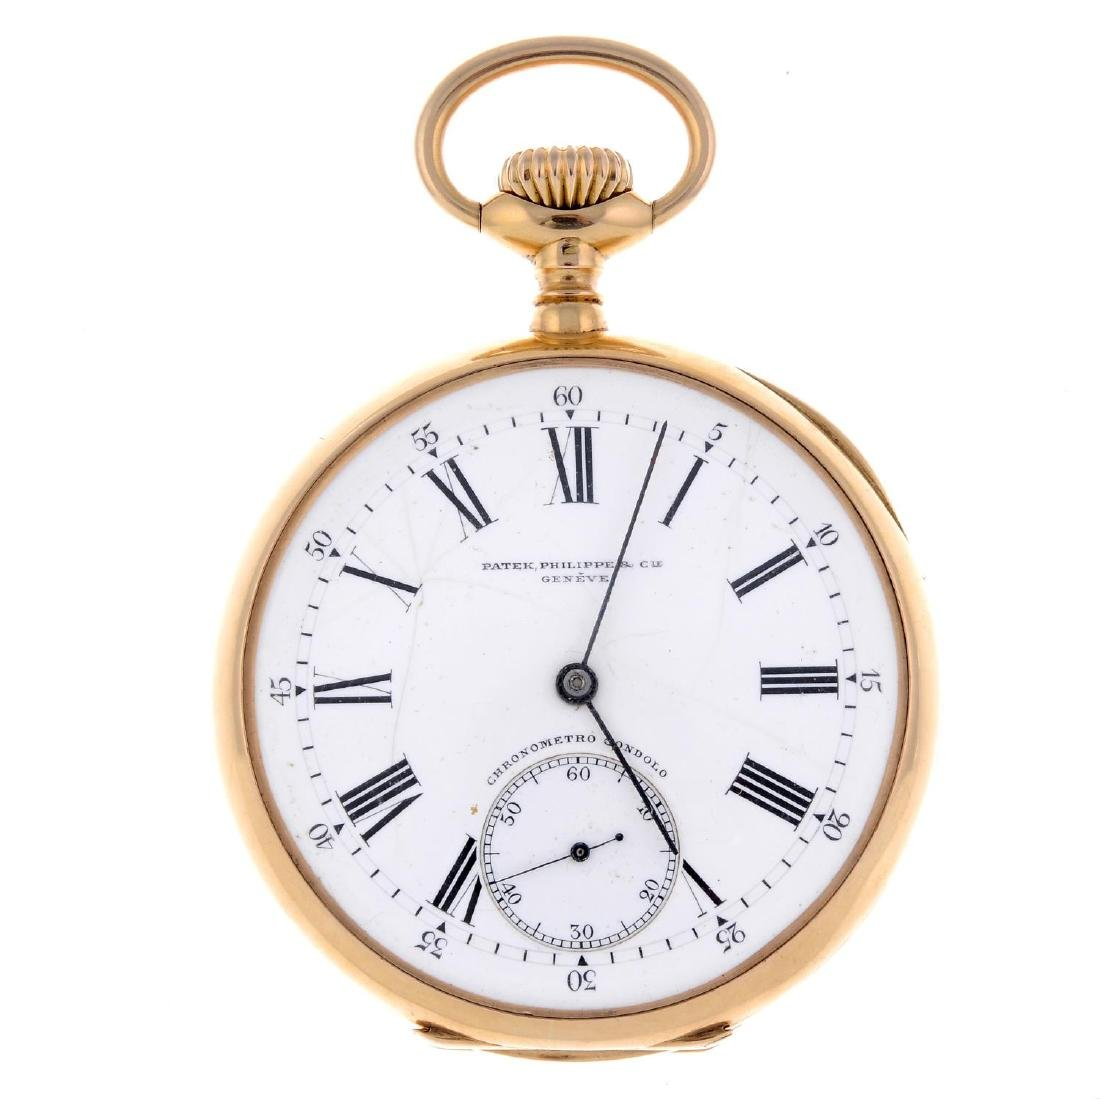 An open face pocket watch by Patek Philippe. Yellow